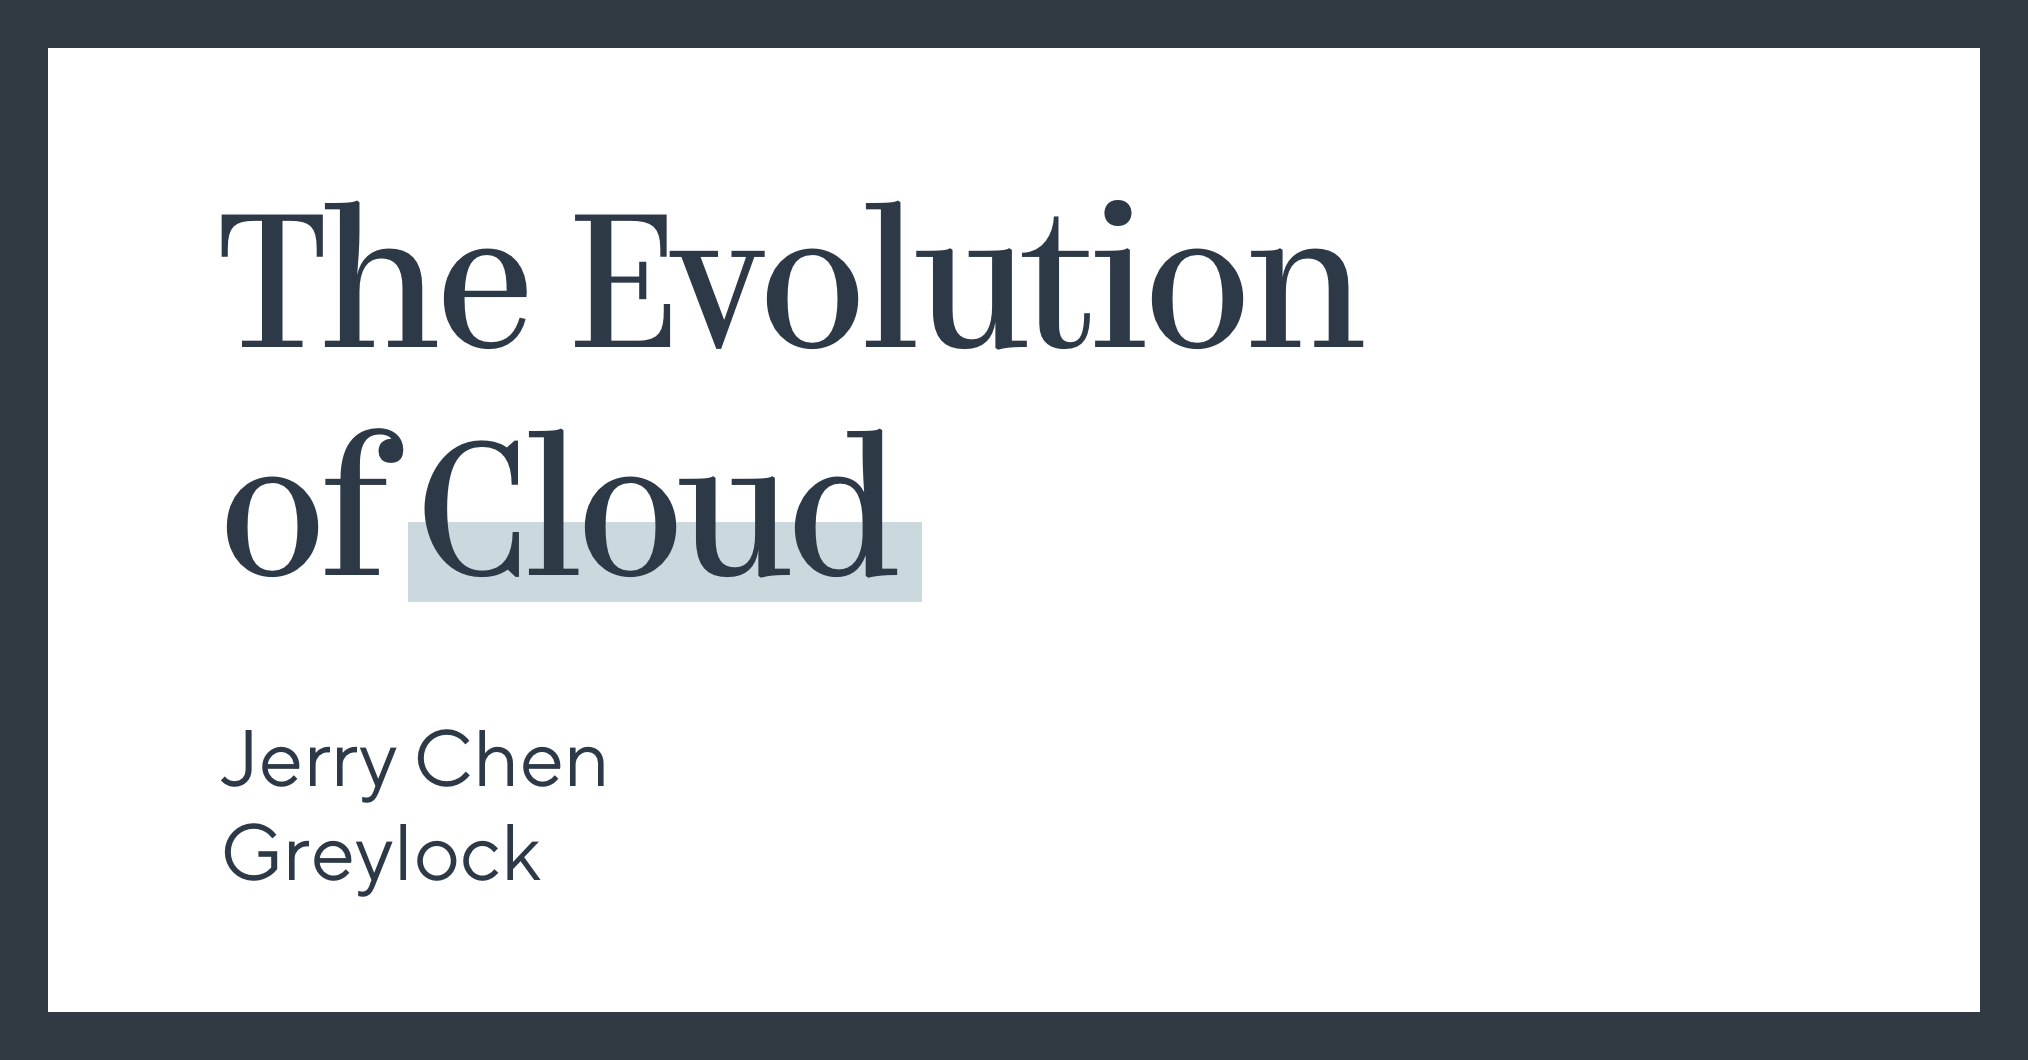 The Evolution of Cloud